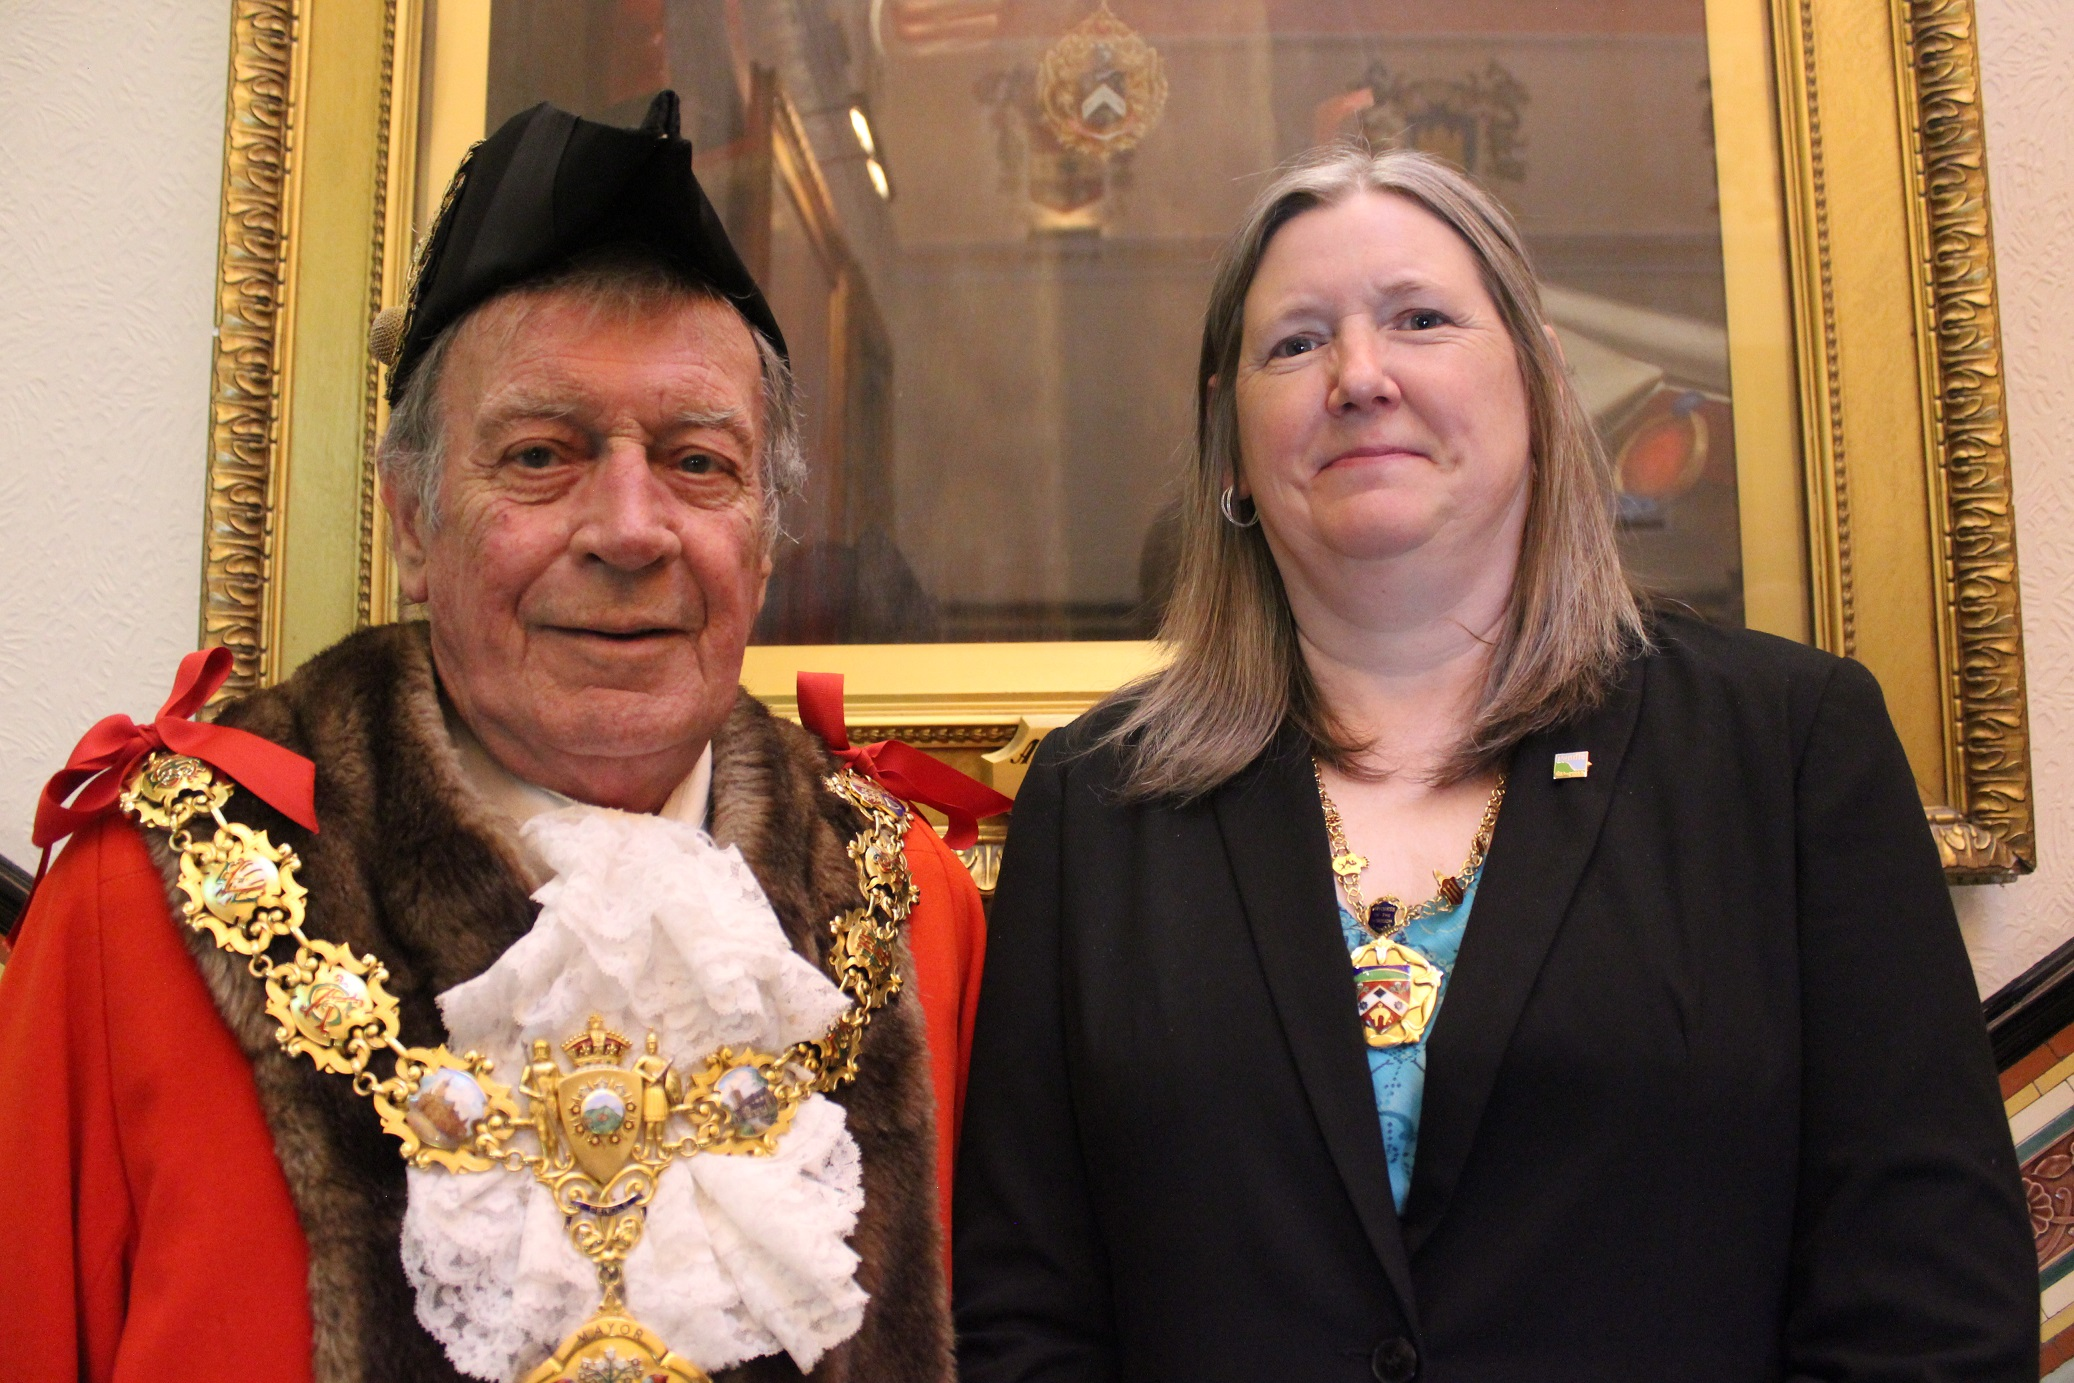 A new Mayor and Mayoress for Pendle